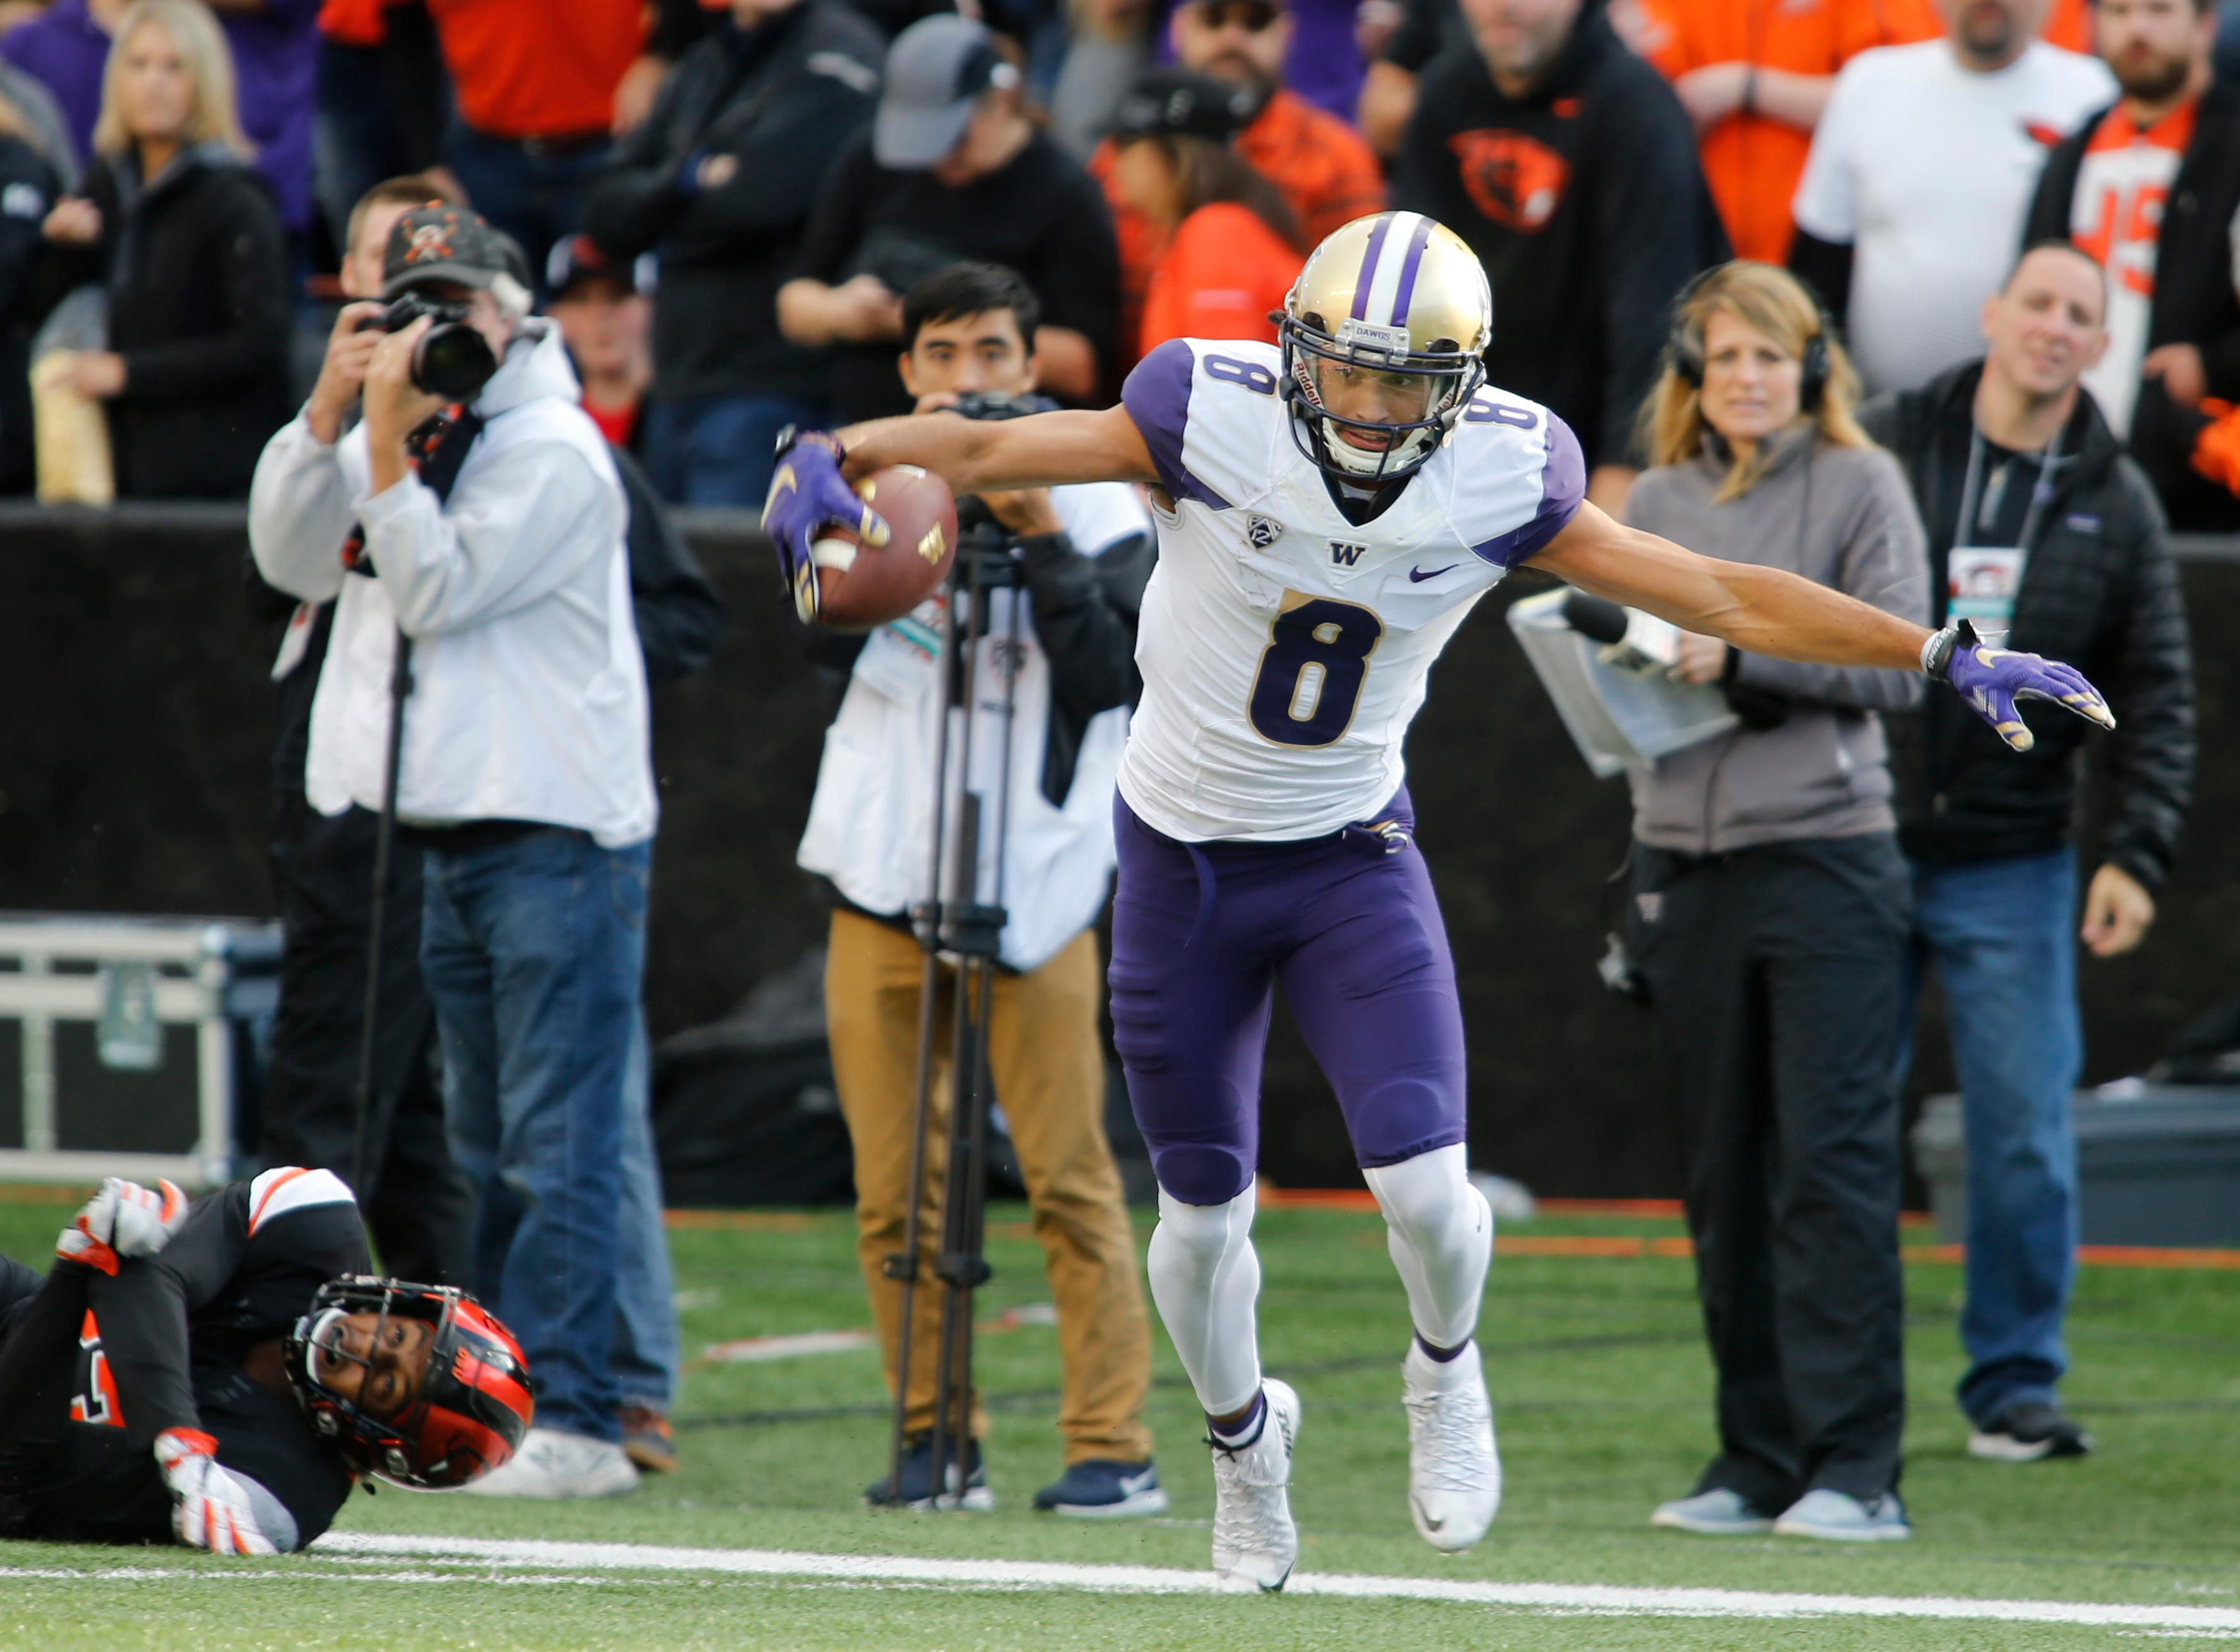 Washington wide receiver Dante Pettis (8) tip toes along the sideline after making a catch in the first half of an NCAA college football game against Oregon State, in Corvallis, Ore., Saturday, Sept. 30, 2017. (AP Photo/Timothy J. Gonzalez)